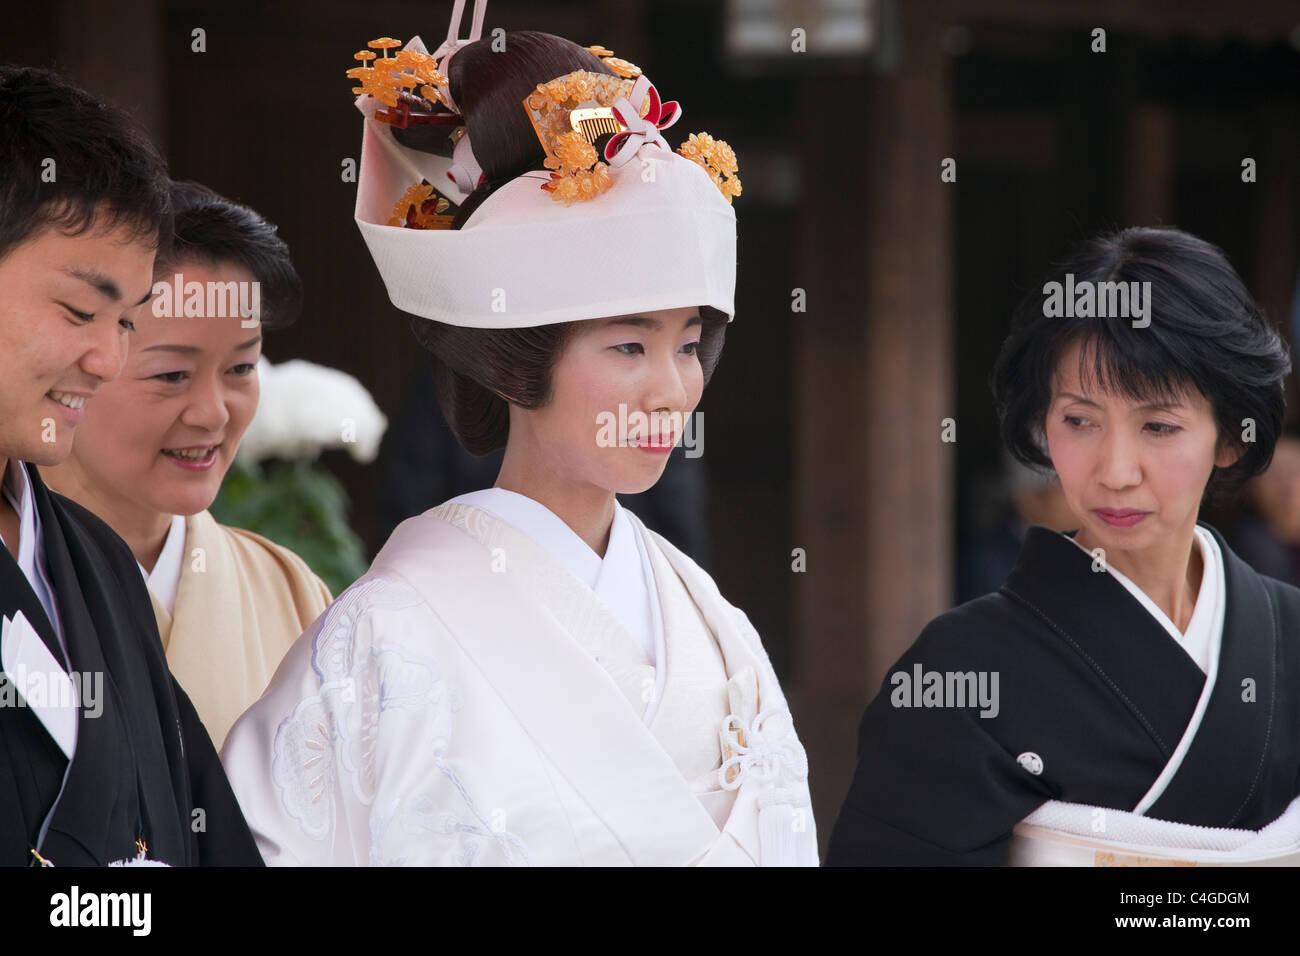 Bride, groom and other wedding party members at Meiji-jingu shrine, Shibuya, Tokyo, Japan, Asia. - Stock Image